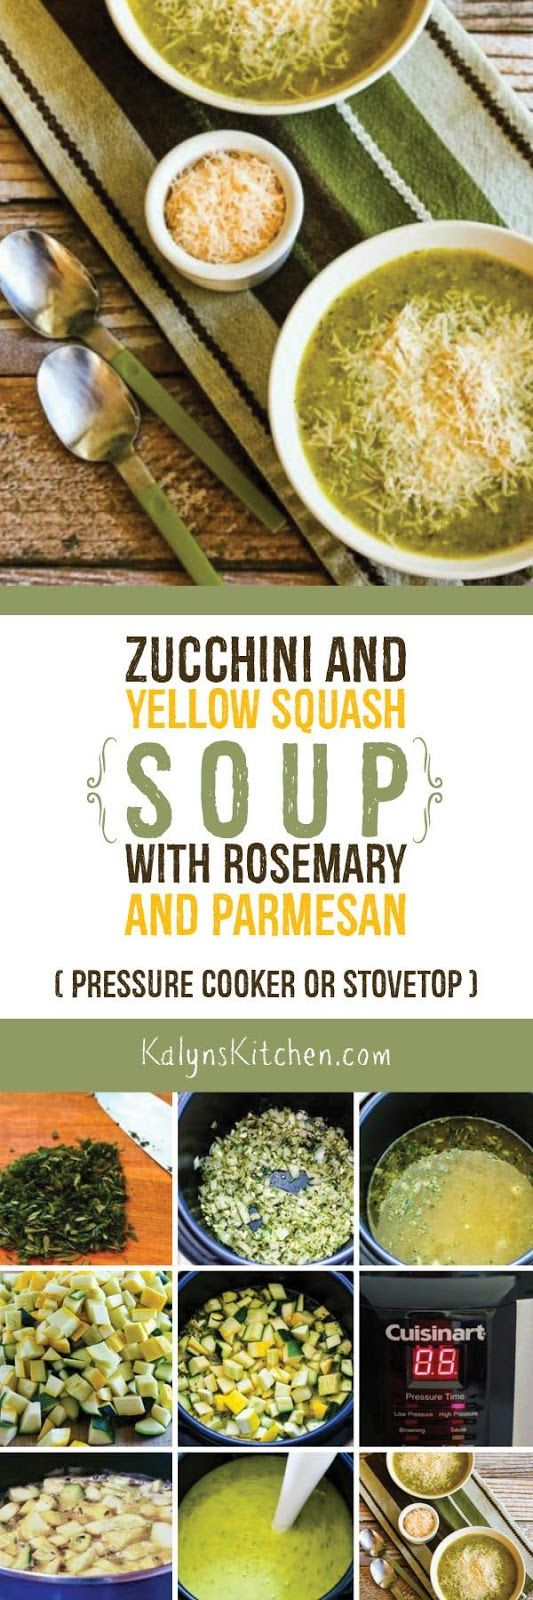 This delicious low-carb, gluten-free, and vegetarian Zucchini and Yellow Squash Soup with Rosemary and Parmesan can be made in the Pressure Cooker or on the stovetop. [found on KalynsKitchen.com]